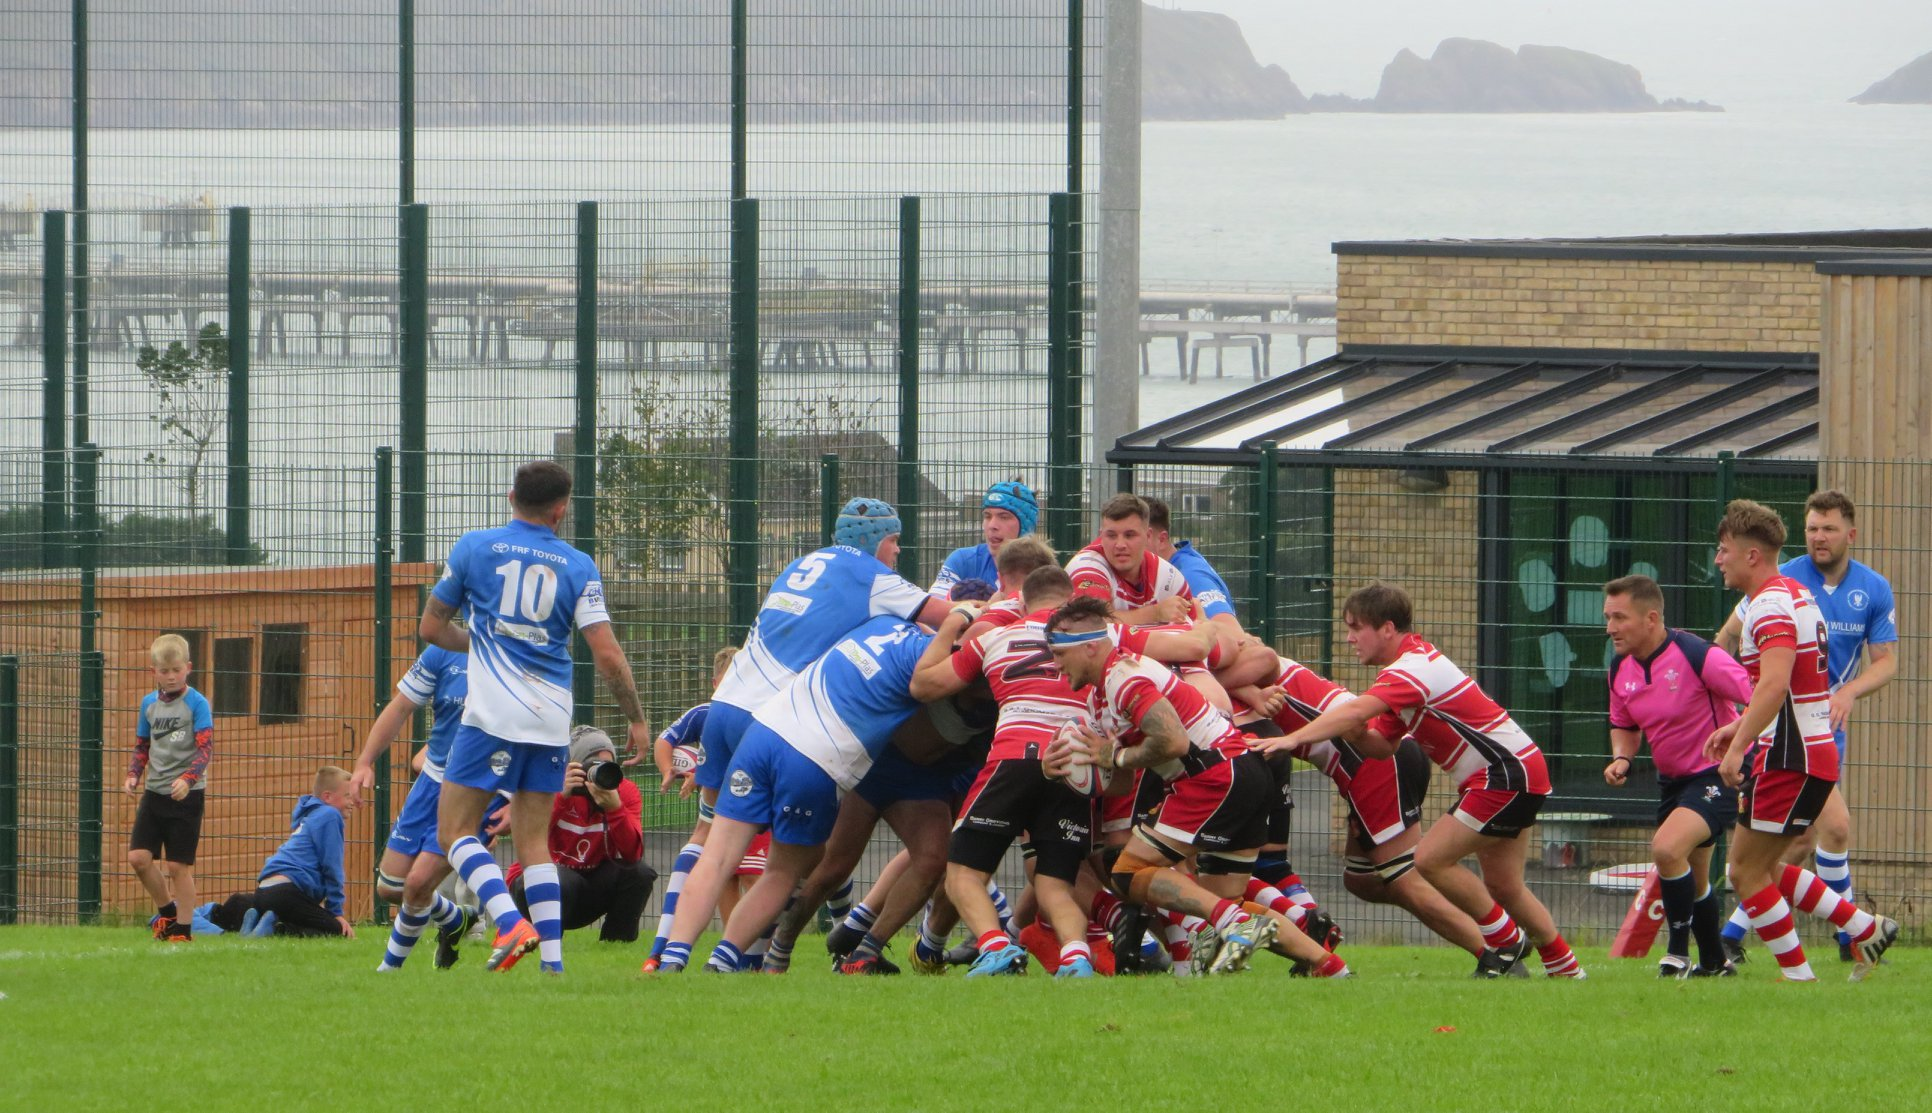 Pembrokeshire rugby previews for Saturday, December 29th: